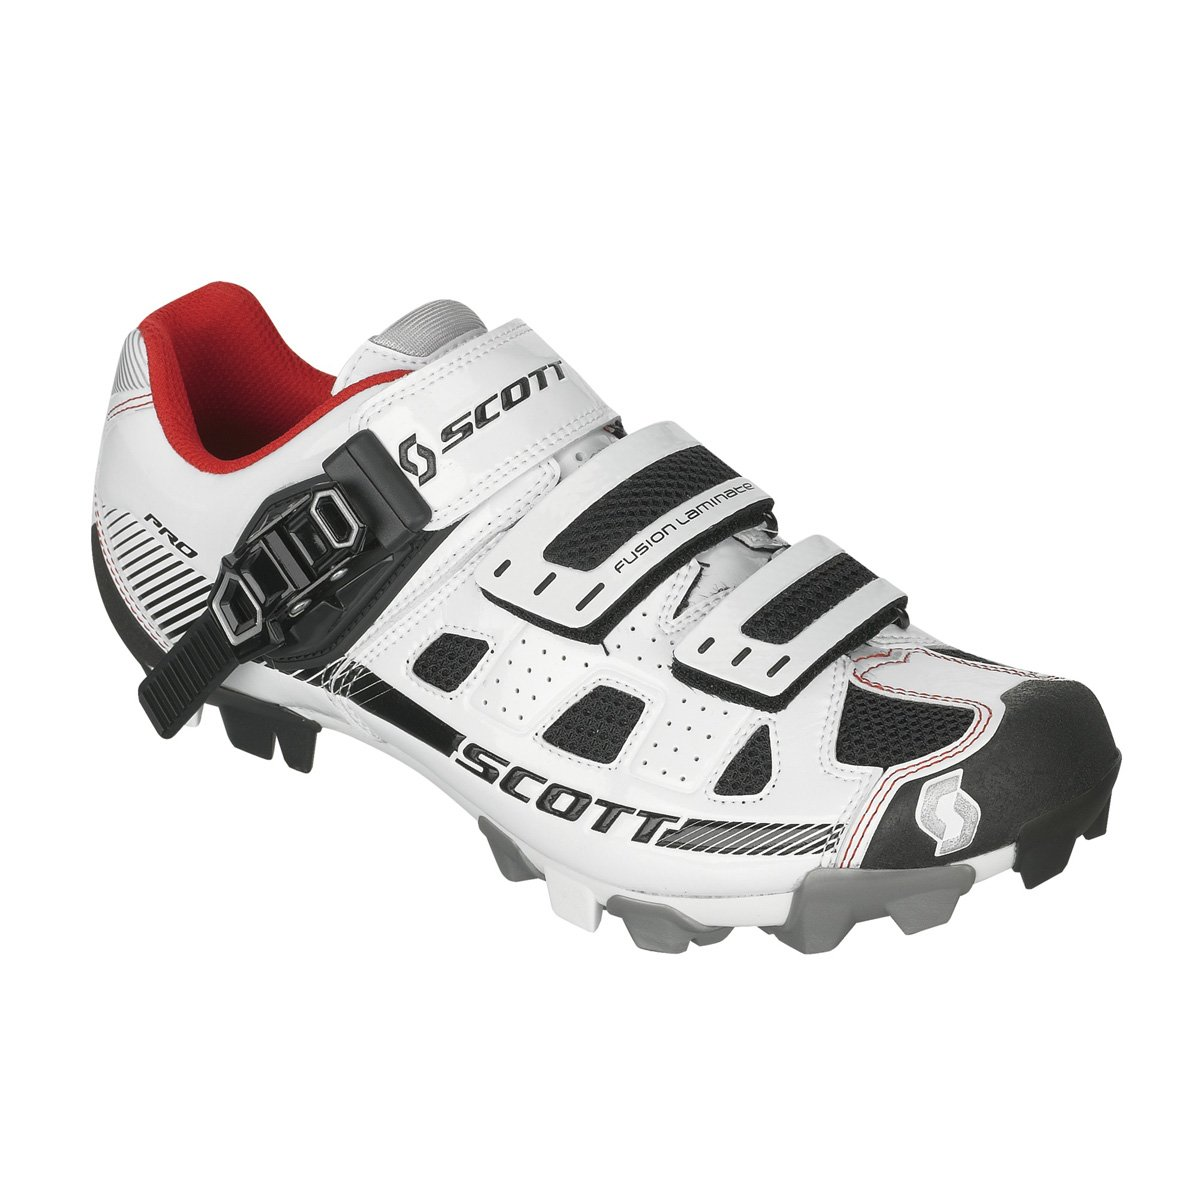 Scott Sports Womens Pro Mountain Cycling Shoe – 234716-2979